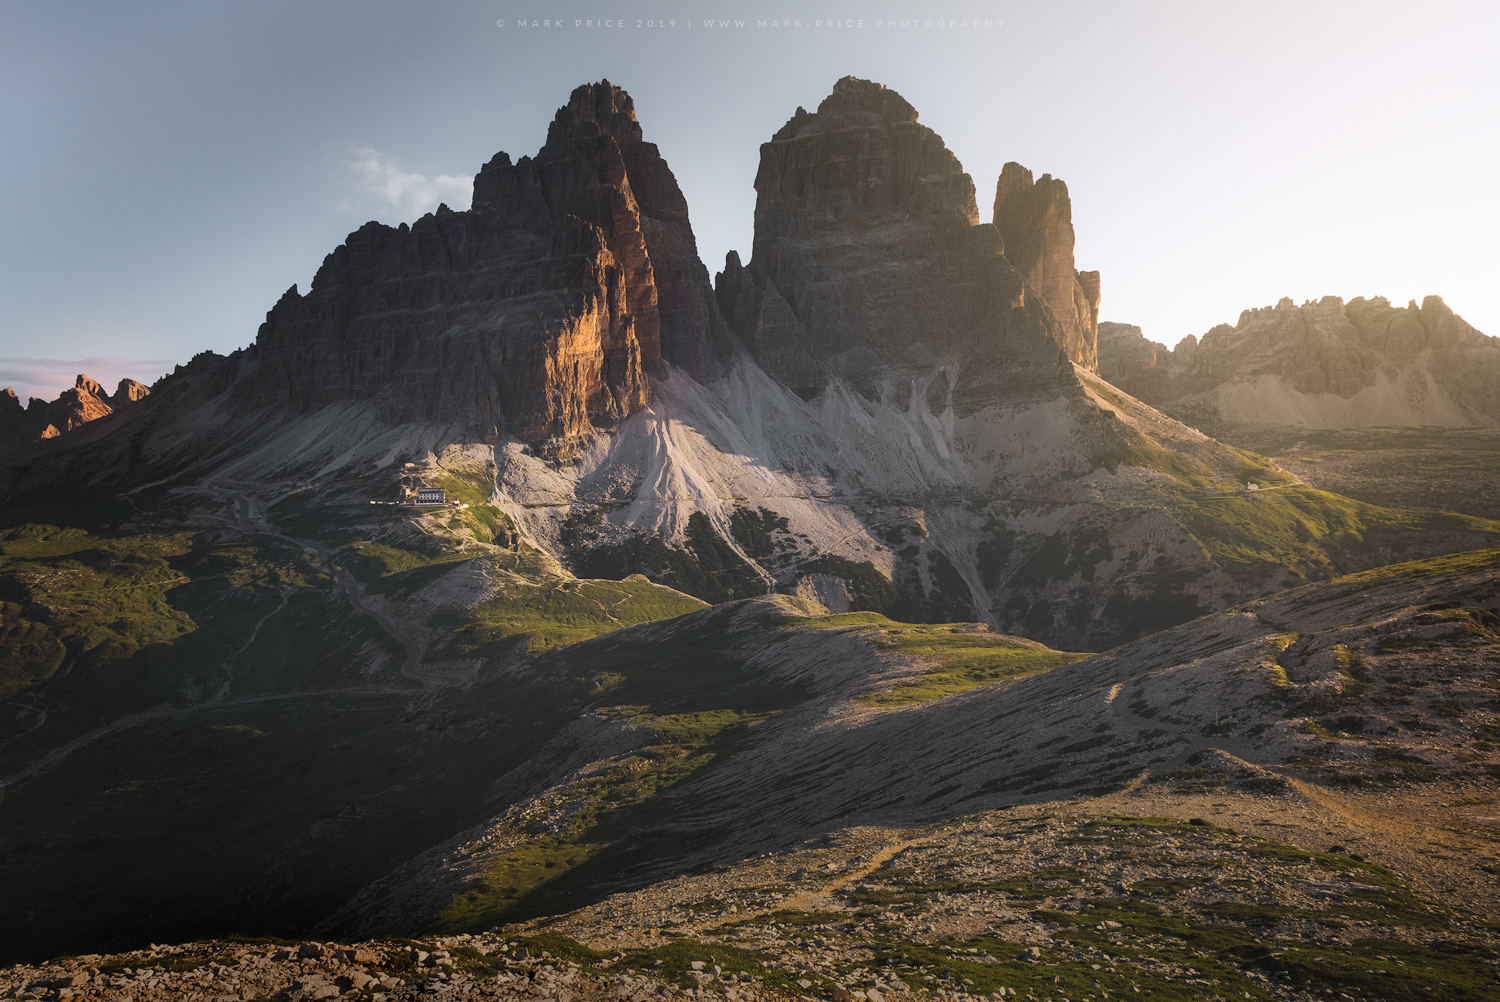 Golden morning light illuminates the south faces of Tre Cime Di Lavaredo